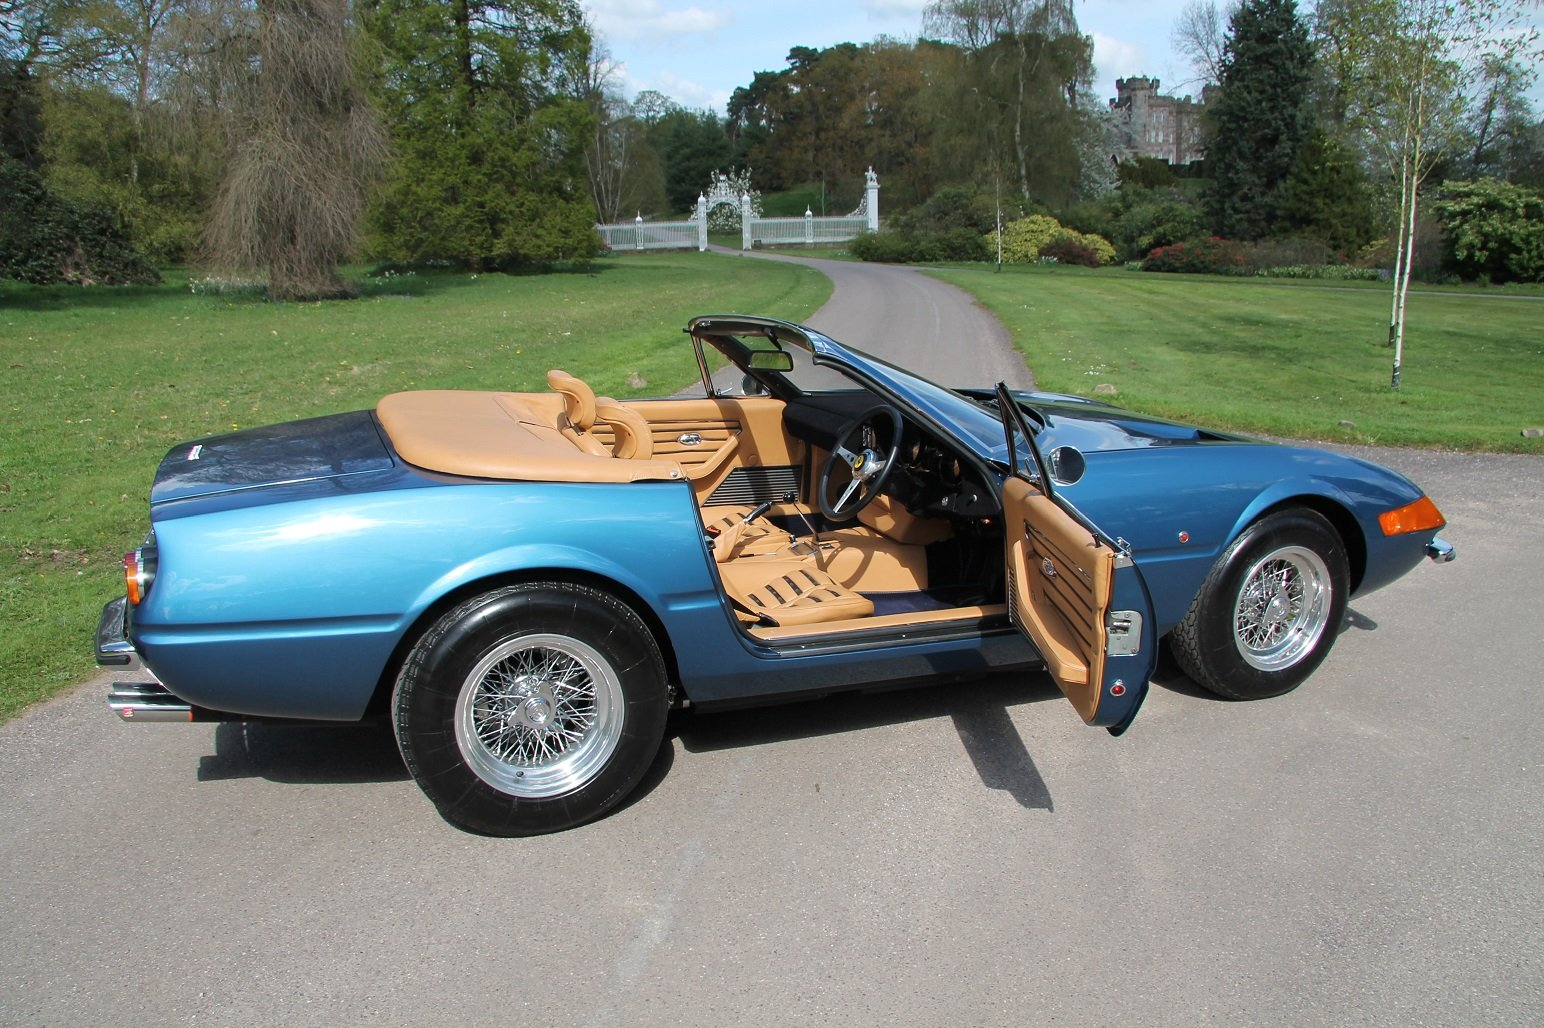 1972 Stunning Daytona Spider Conversion 8k miles from new For Sale (picture 6 of 6)